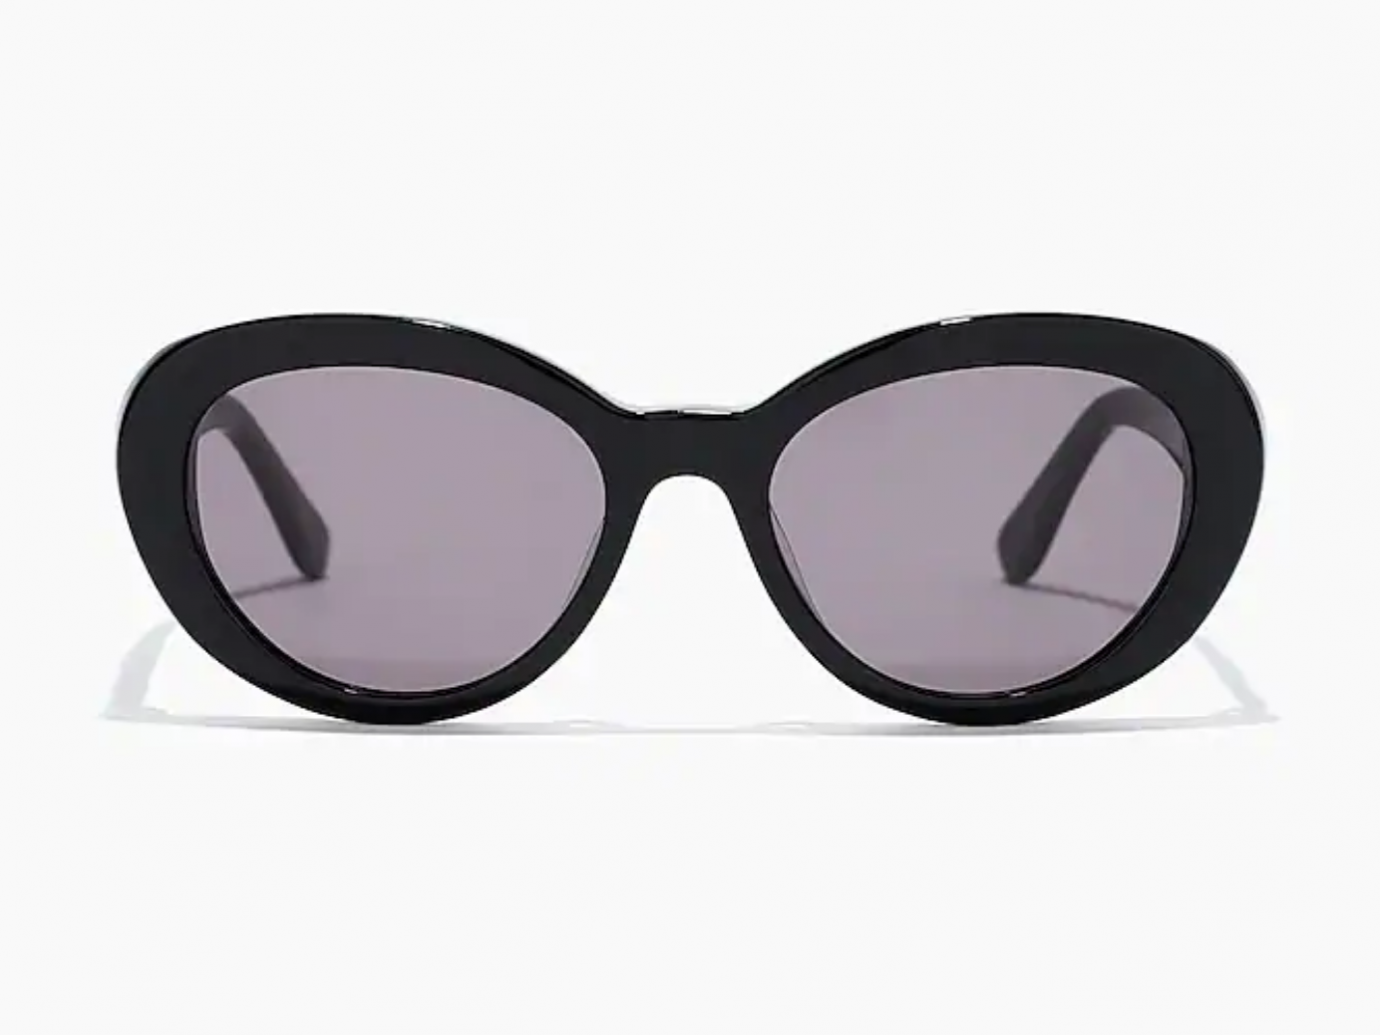 j. crew Retro cat eye sunglasses